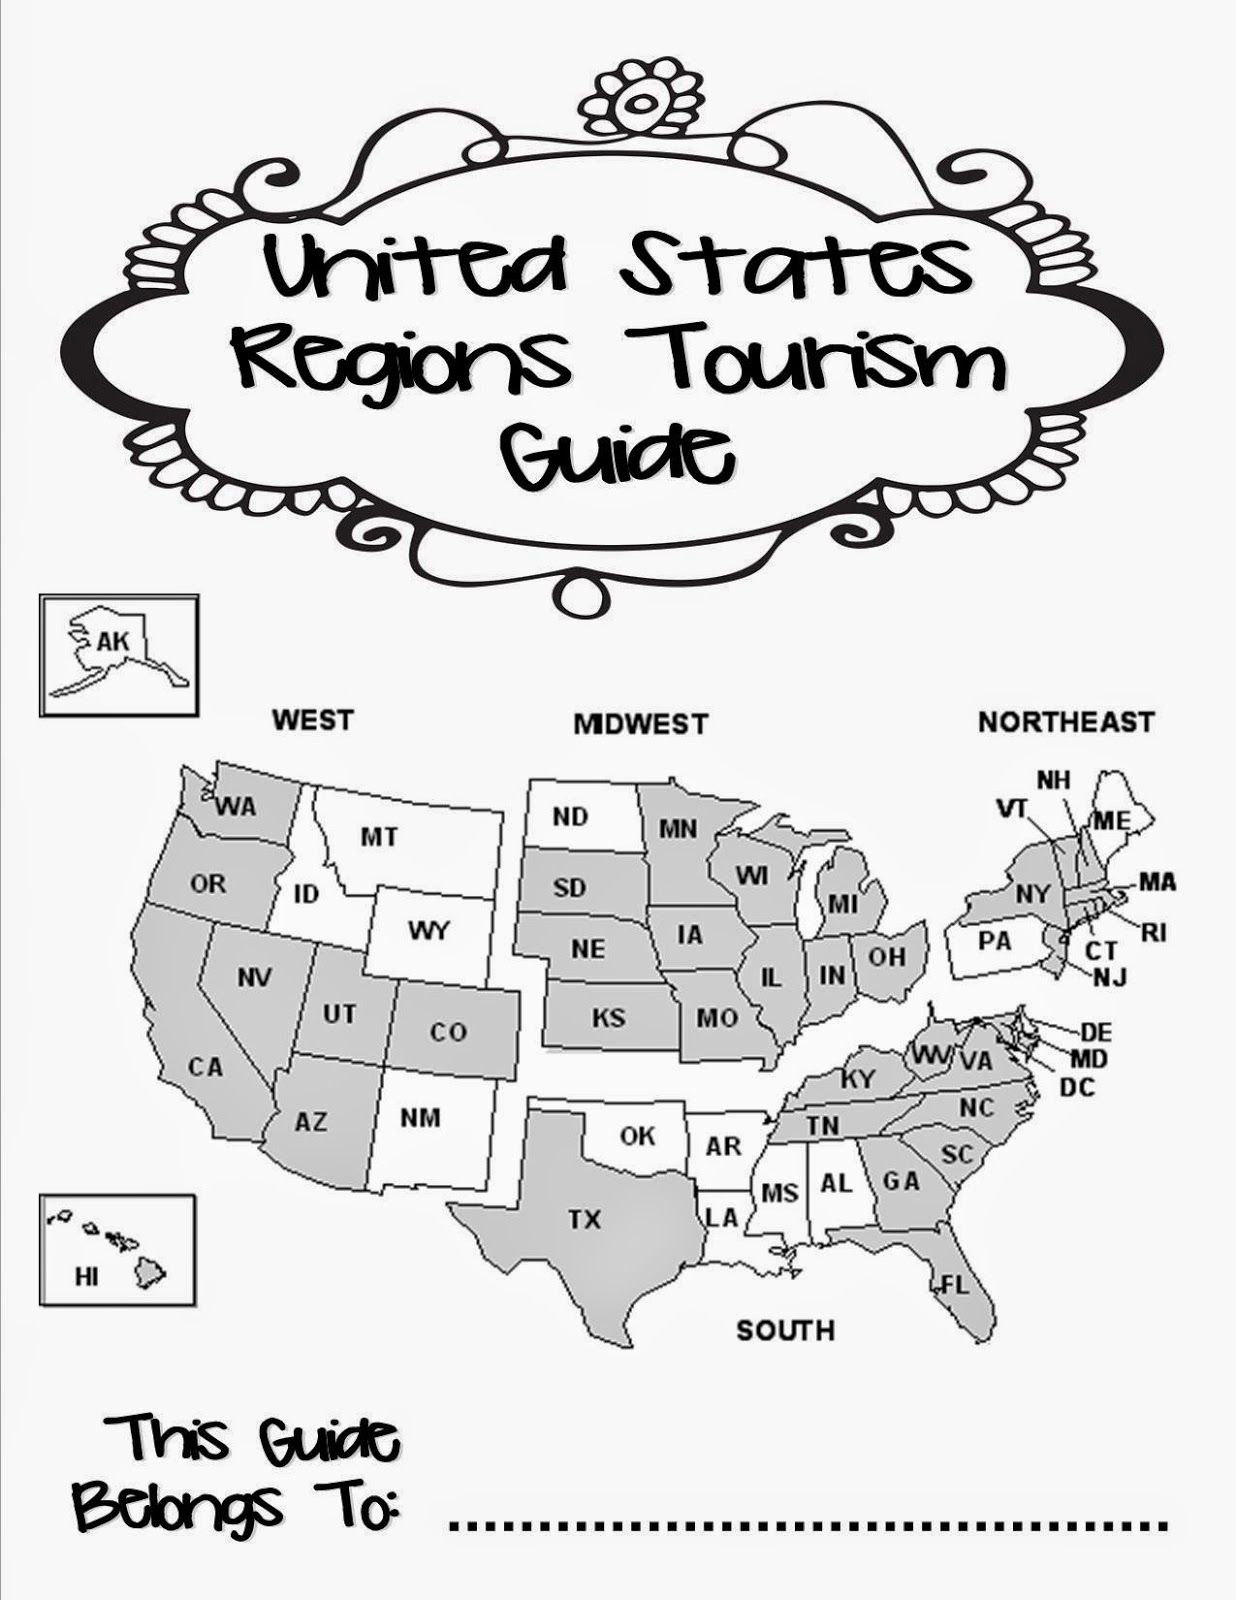 United States Regions Tourism Guide A Group Project On Learning The 5 Regions Of The Us